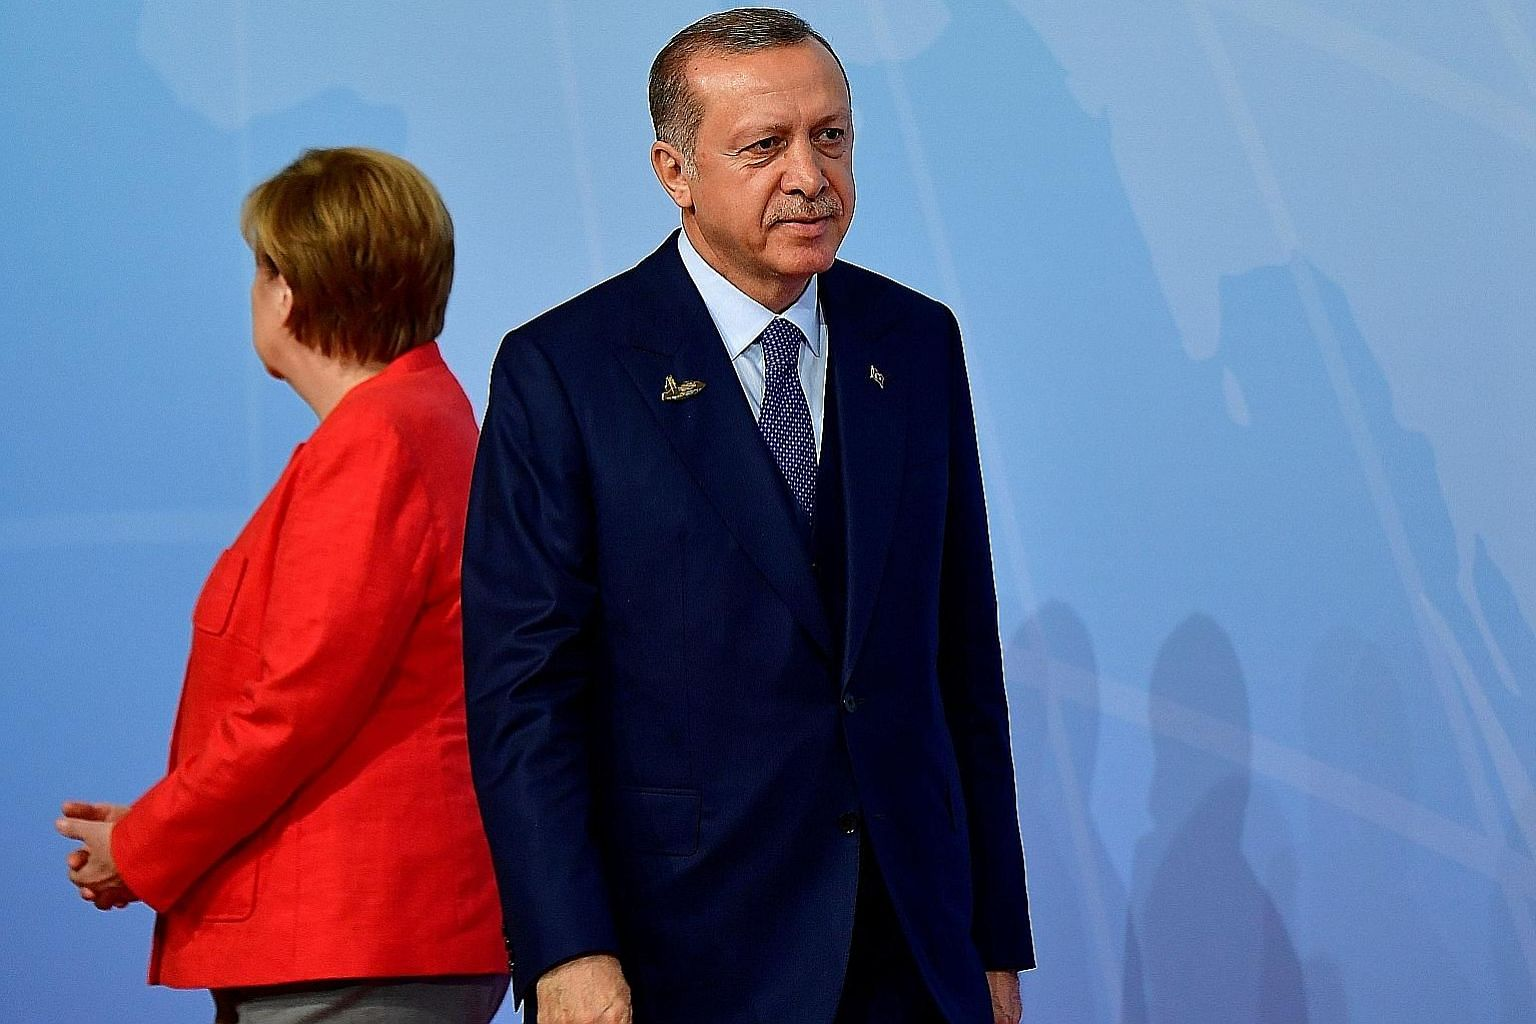 Chancellor Angela Merkel with her back to Mr Recep Tayyip Erdogan at last month's G-20 summit. Bilateral relations reached a nadir after Turkey arrested a journalist of Turkish descent working for a German newspaper.